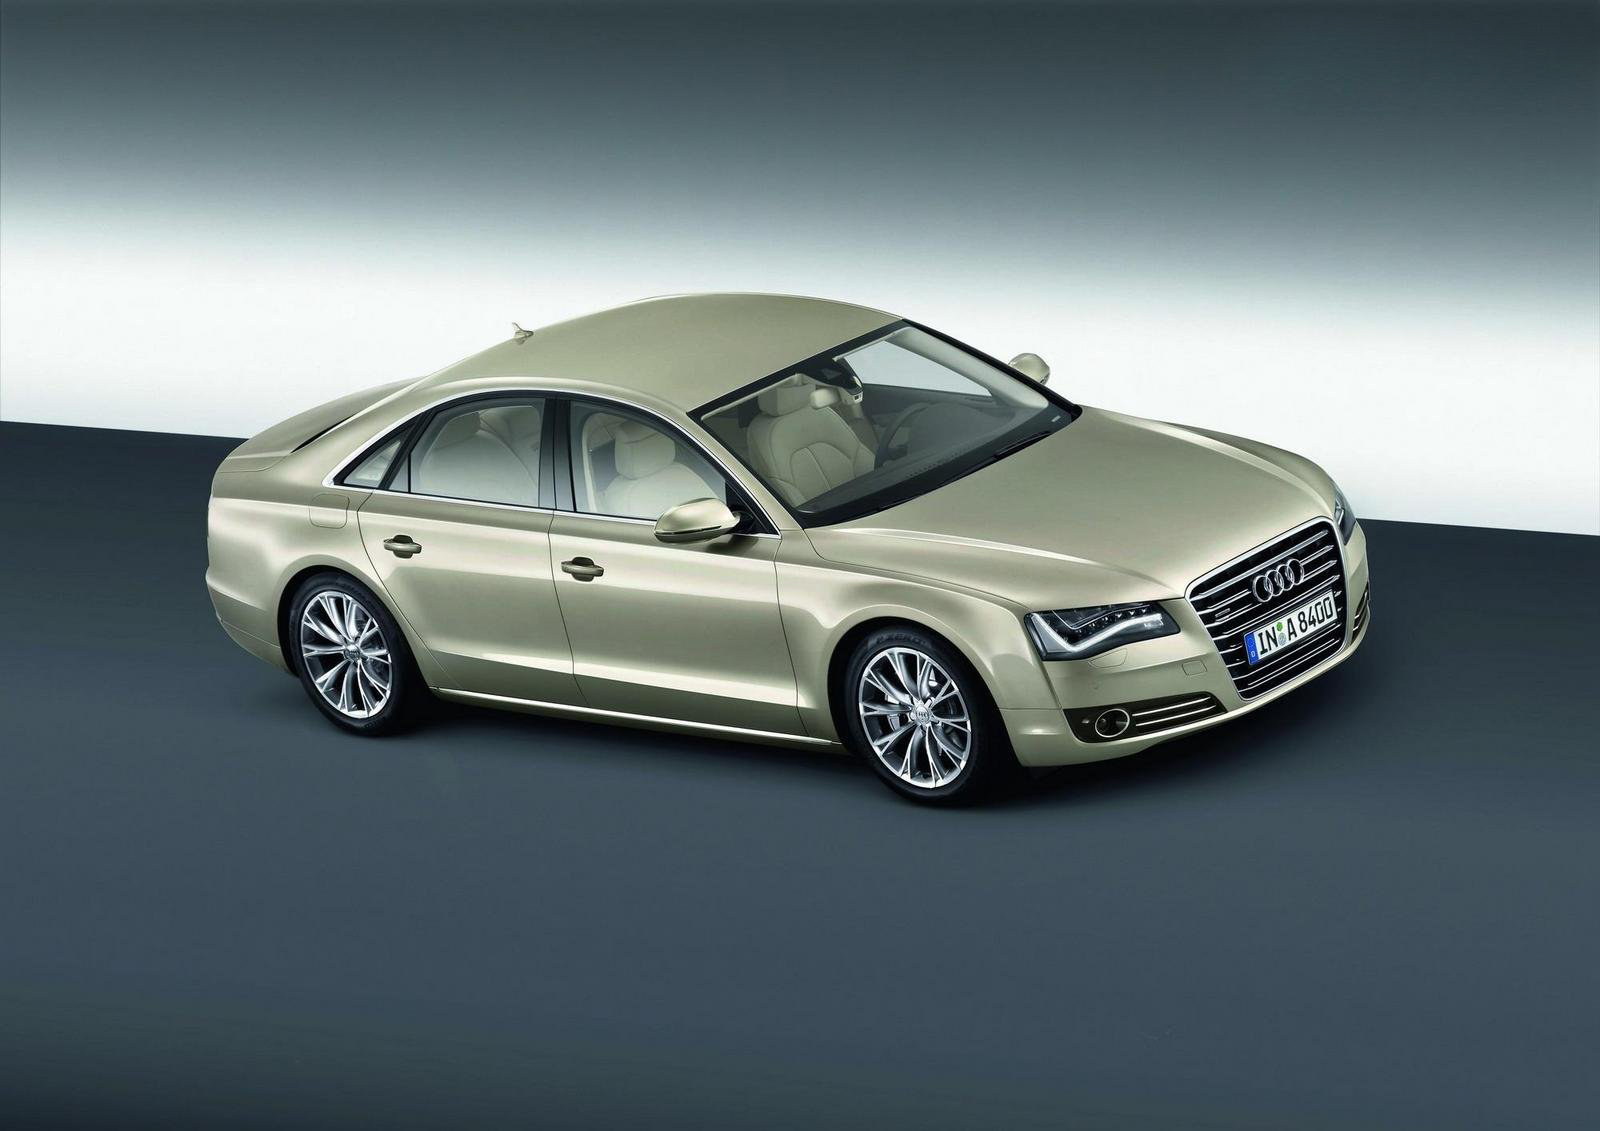 of the Audi A8 hybrid is